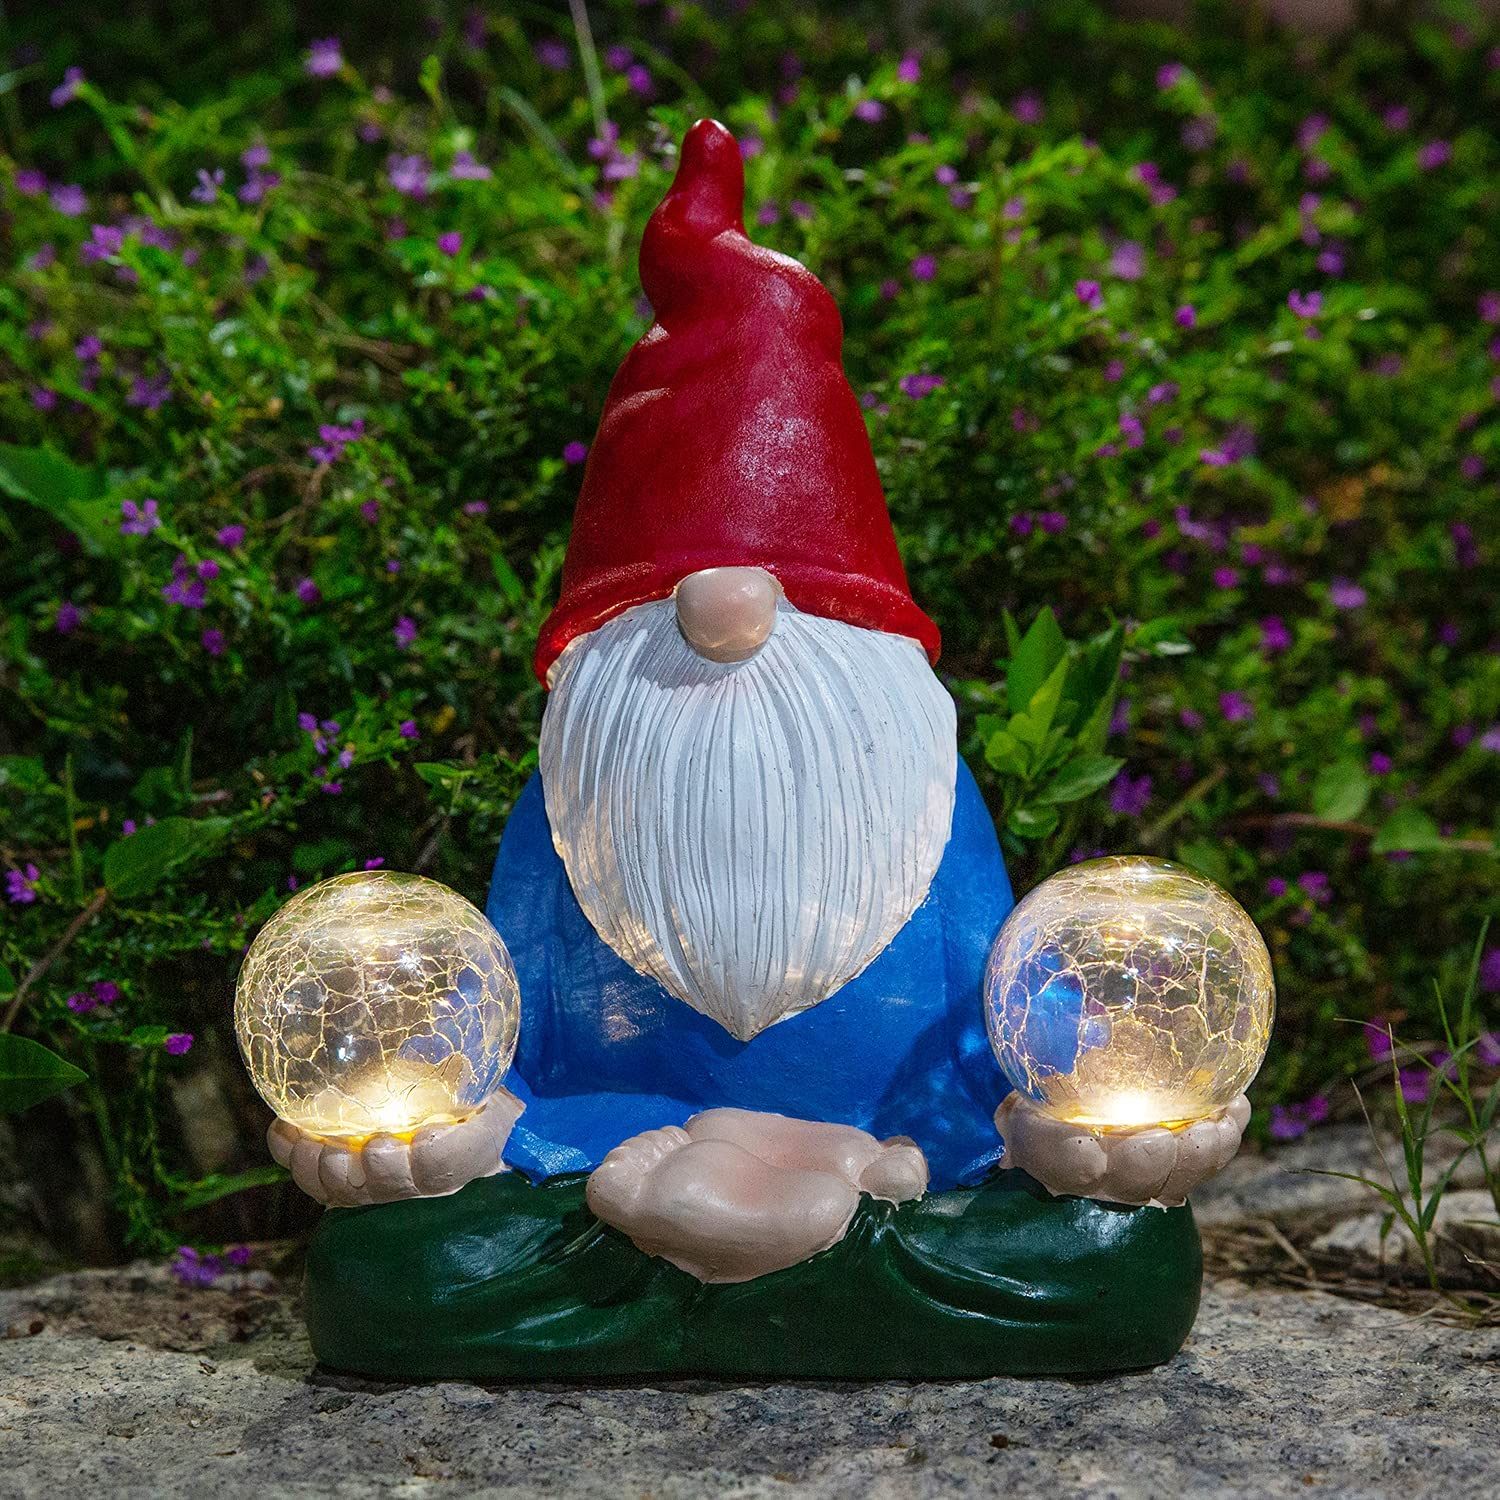 Garden Gnome Statue Funny Resin Gnomes with Solar Lights Waterproof Cracked Glass Ball Warm White LED for Outdoor Garden Decor Decorative Patio Yard Pathway Walkway Courtyard Lawn,2 Globe